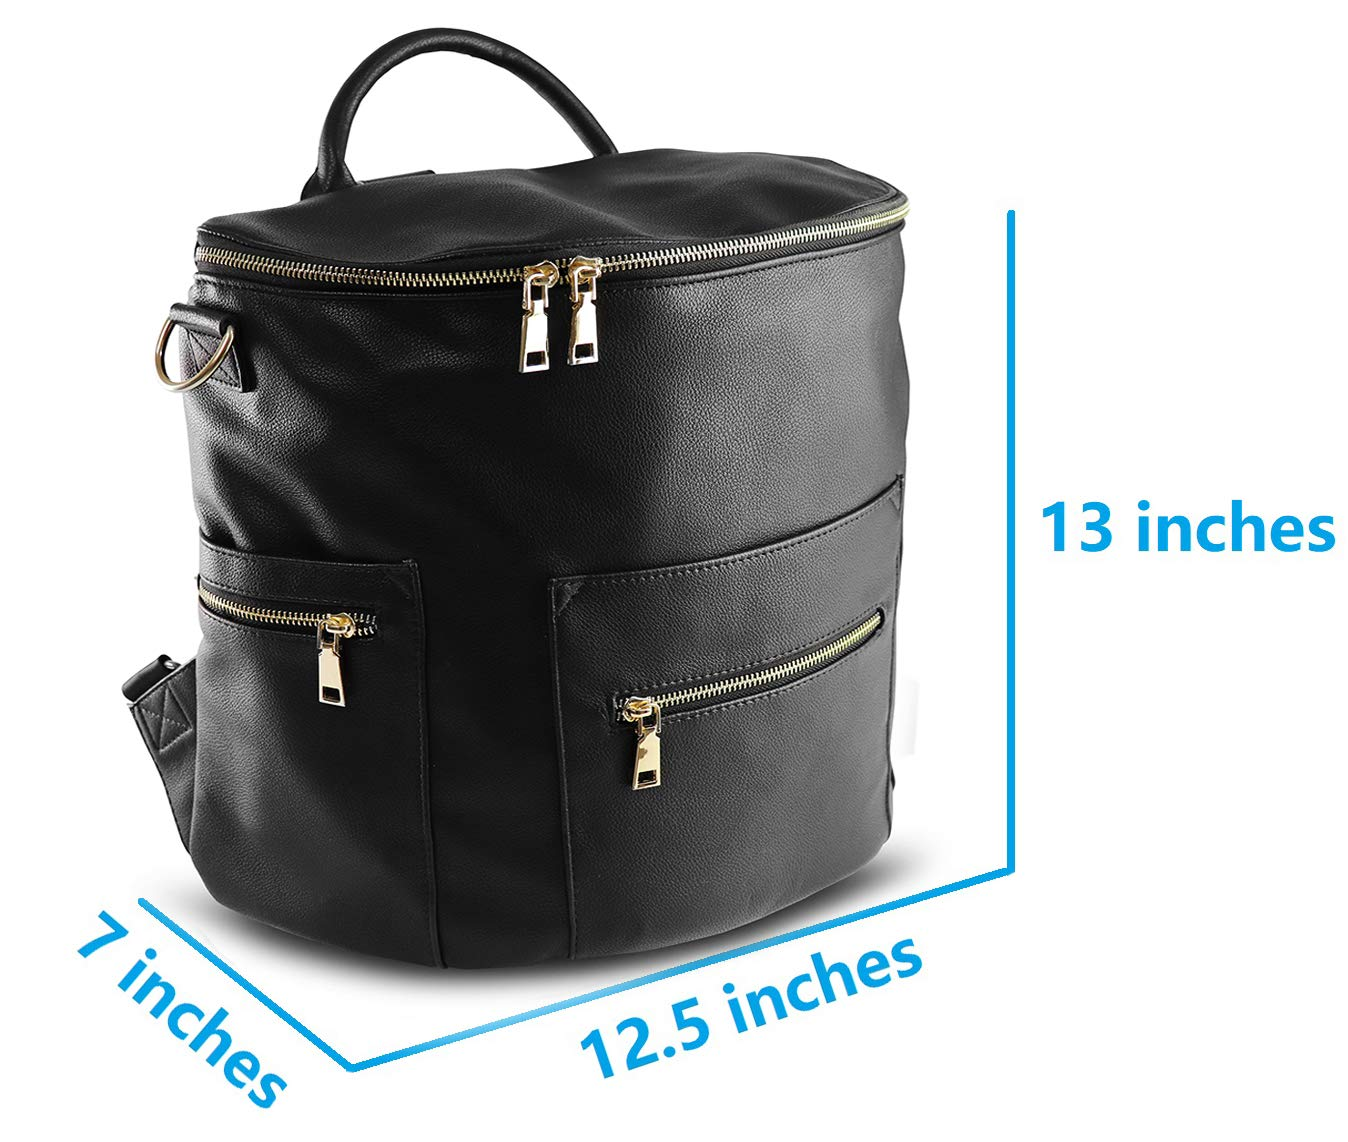 Amazon.com   Vegan Leather Diaper Bag Backpack with Changing Pad, Large  Storage Capacity, 13 Pockets Organizer Bag for Mother of 2 Kids (Black)    Baby 7db262d339